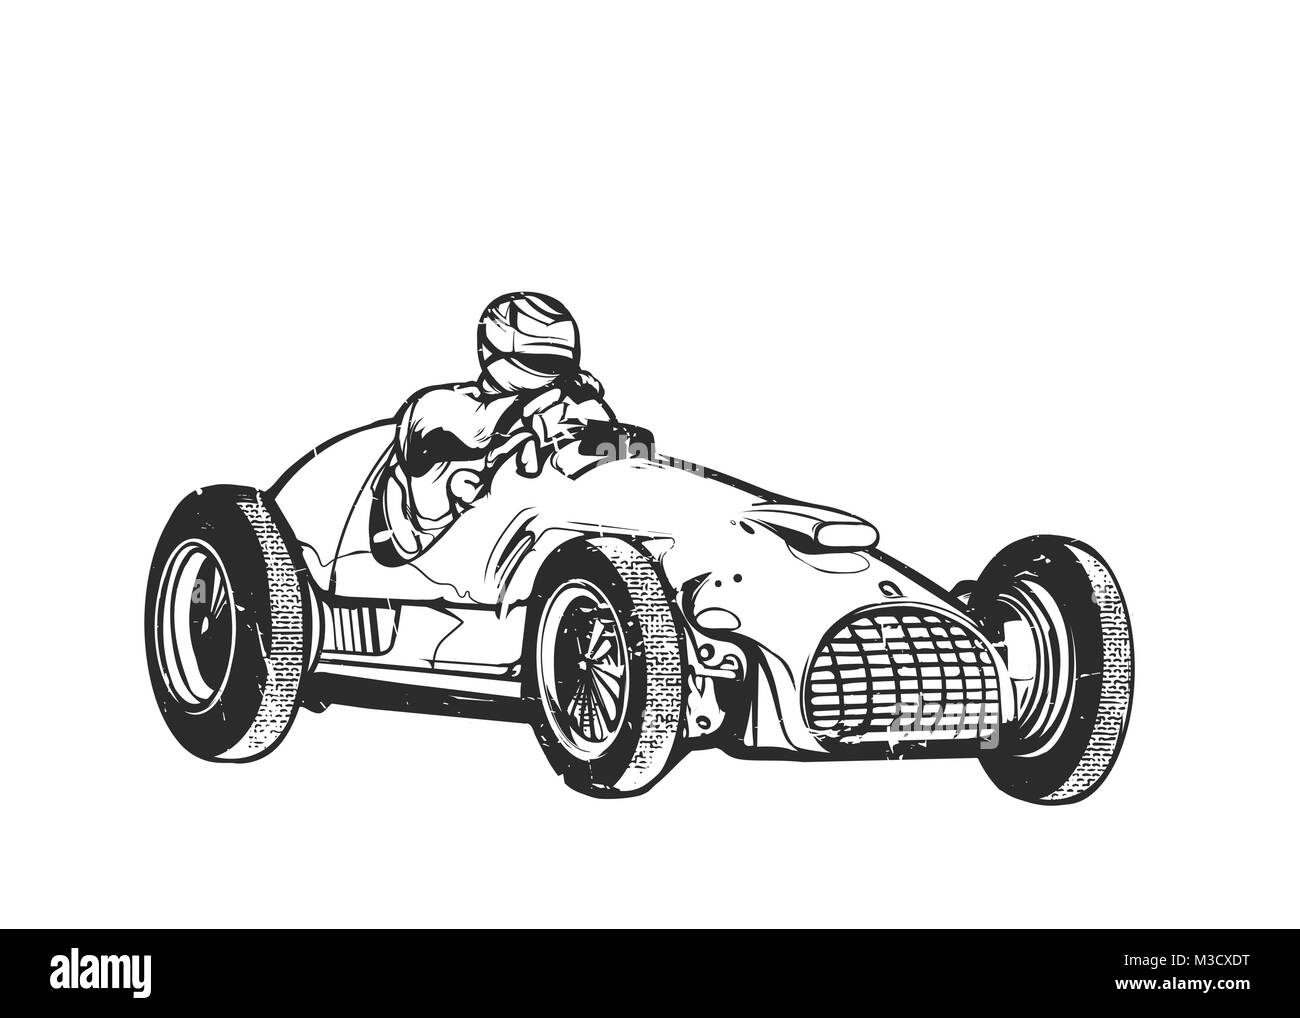 Vintage Racing Car Illustration High Resolution Stock Photography And Images Alamy